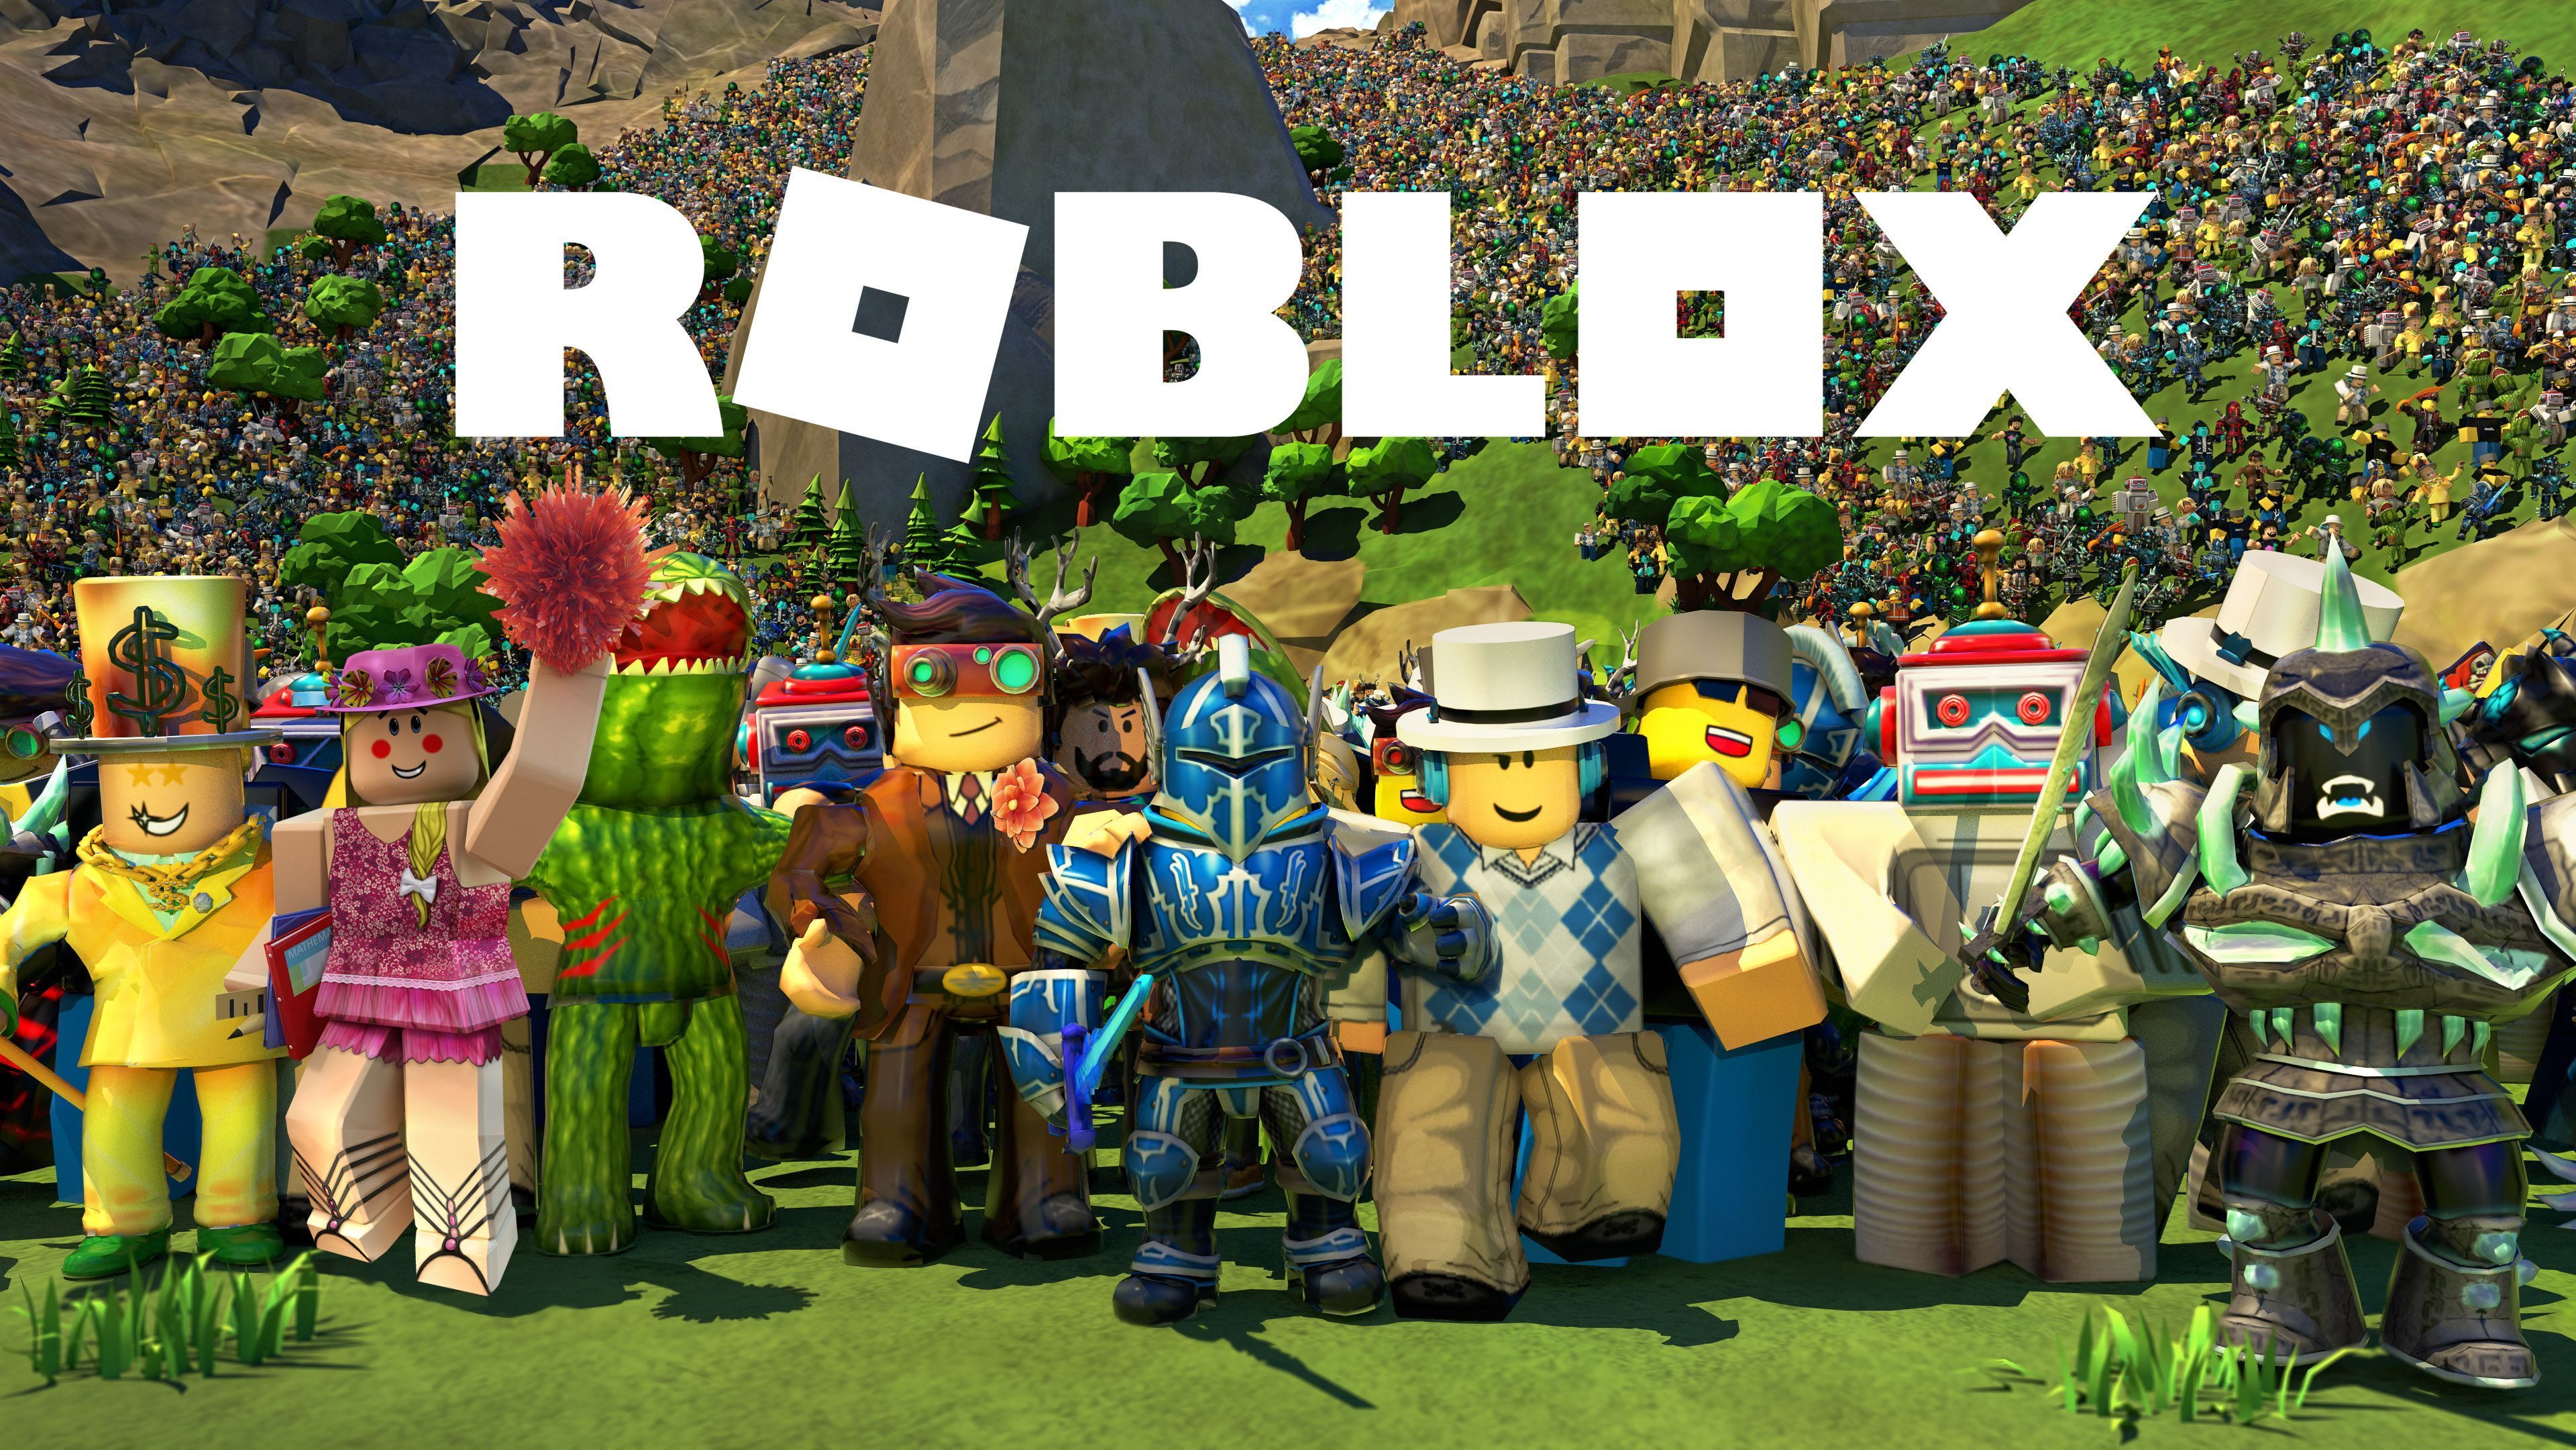 Roblox Wallpapers Top Free Roblox Backgrounds Wallpaperaccess Roblox Gifts Roblox Pictures What Is Roblox